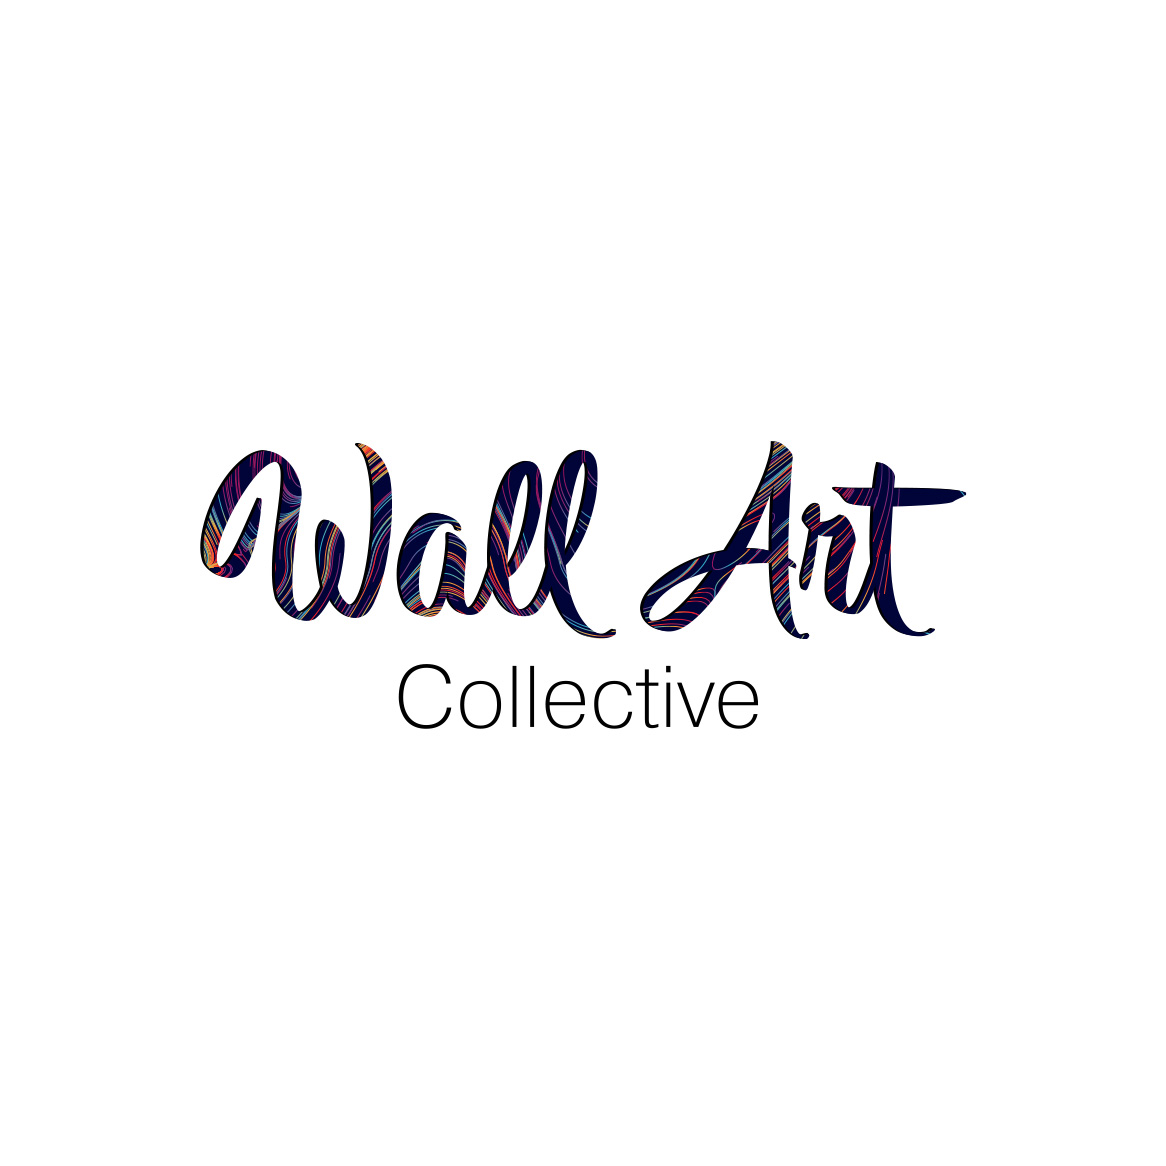 Sample image of logo design for Wall Art Collective.